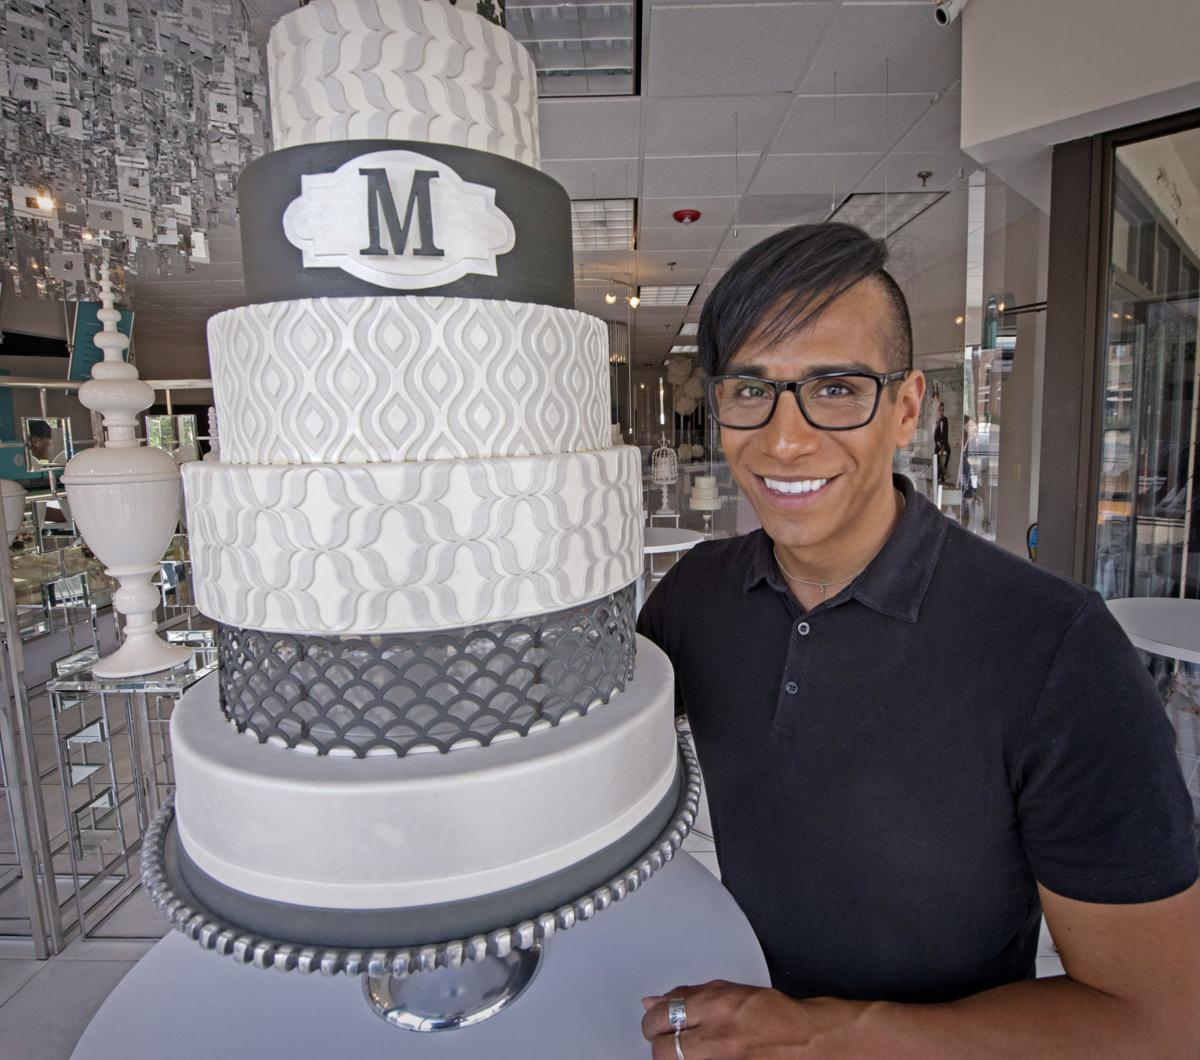 Decorating Cakes For Weddings Special Occasions Evolves In Size